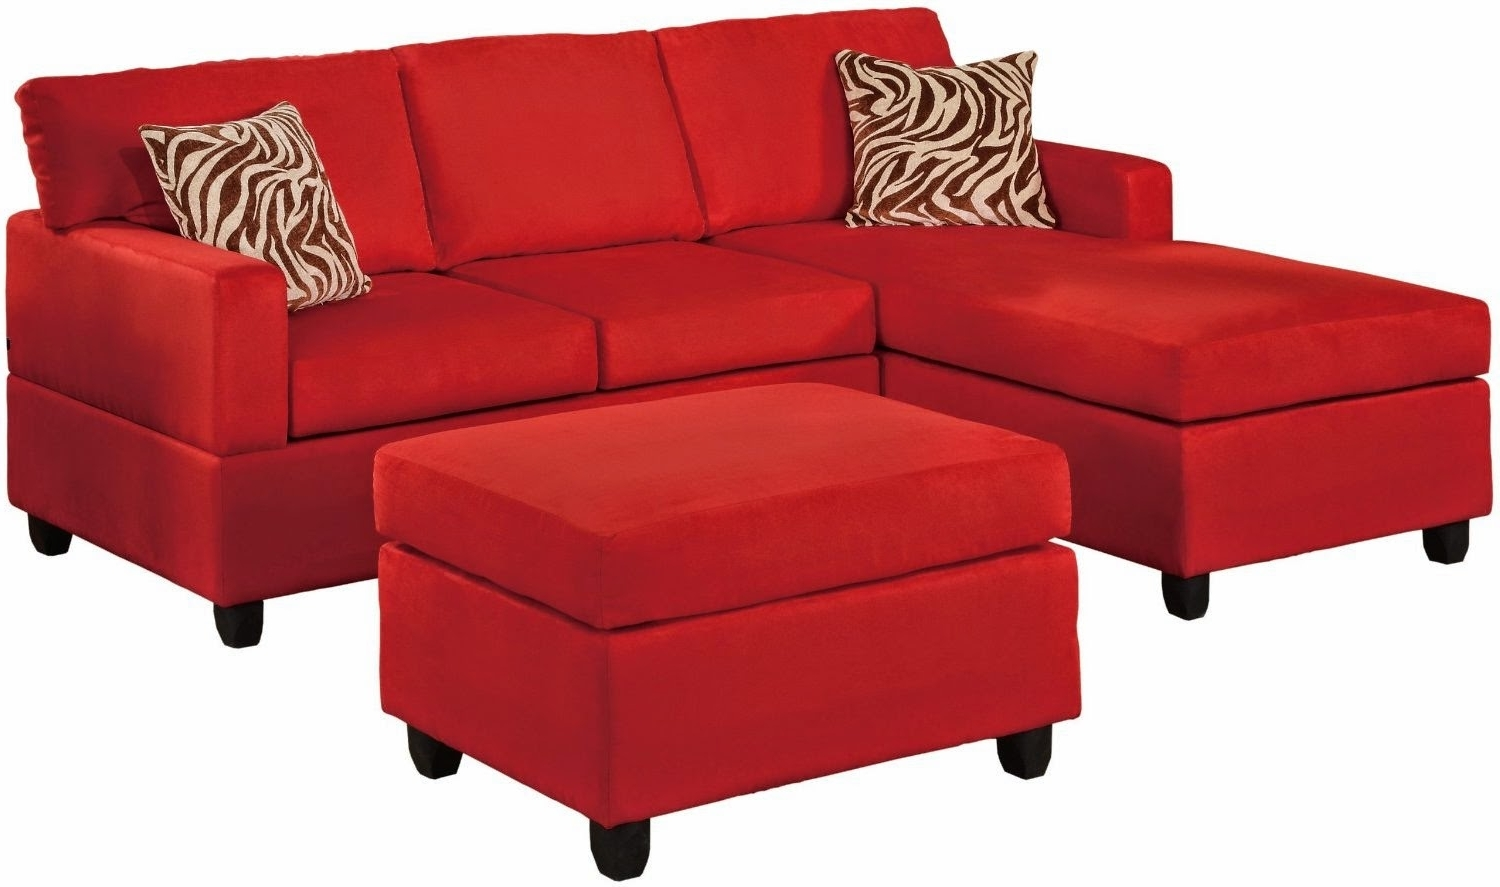 Widely Used Sofa ~ Awesome Red Sectional Sofa 14700035 Red Sectional Sofa Within Red Sectional Sofas With Chaise (View 15 of 15)